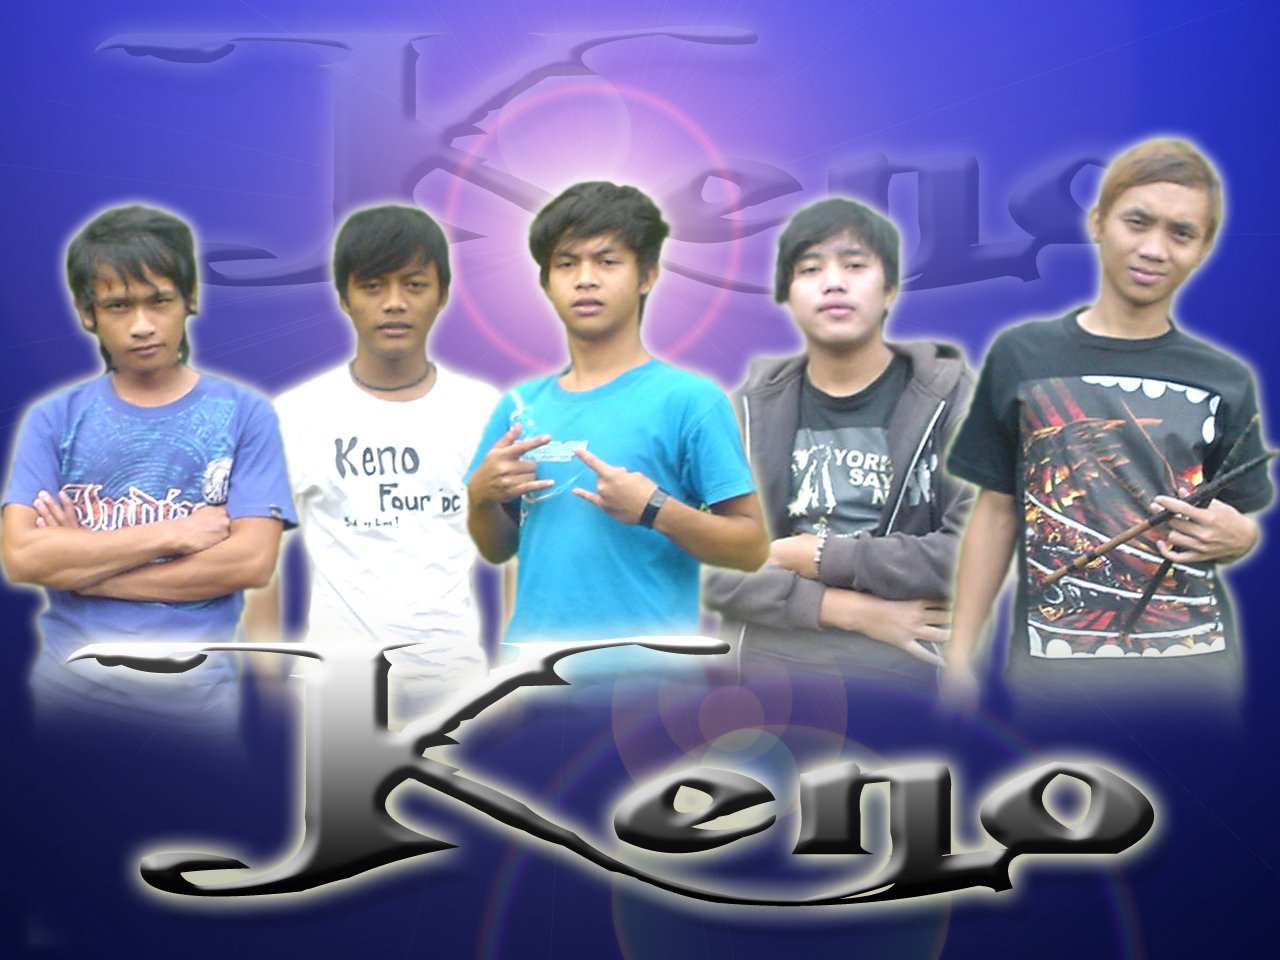 KENO Band - Band Asuhan GlassiX Management